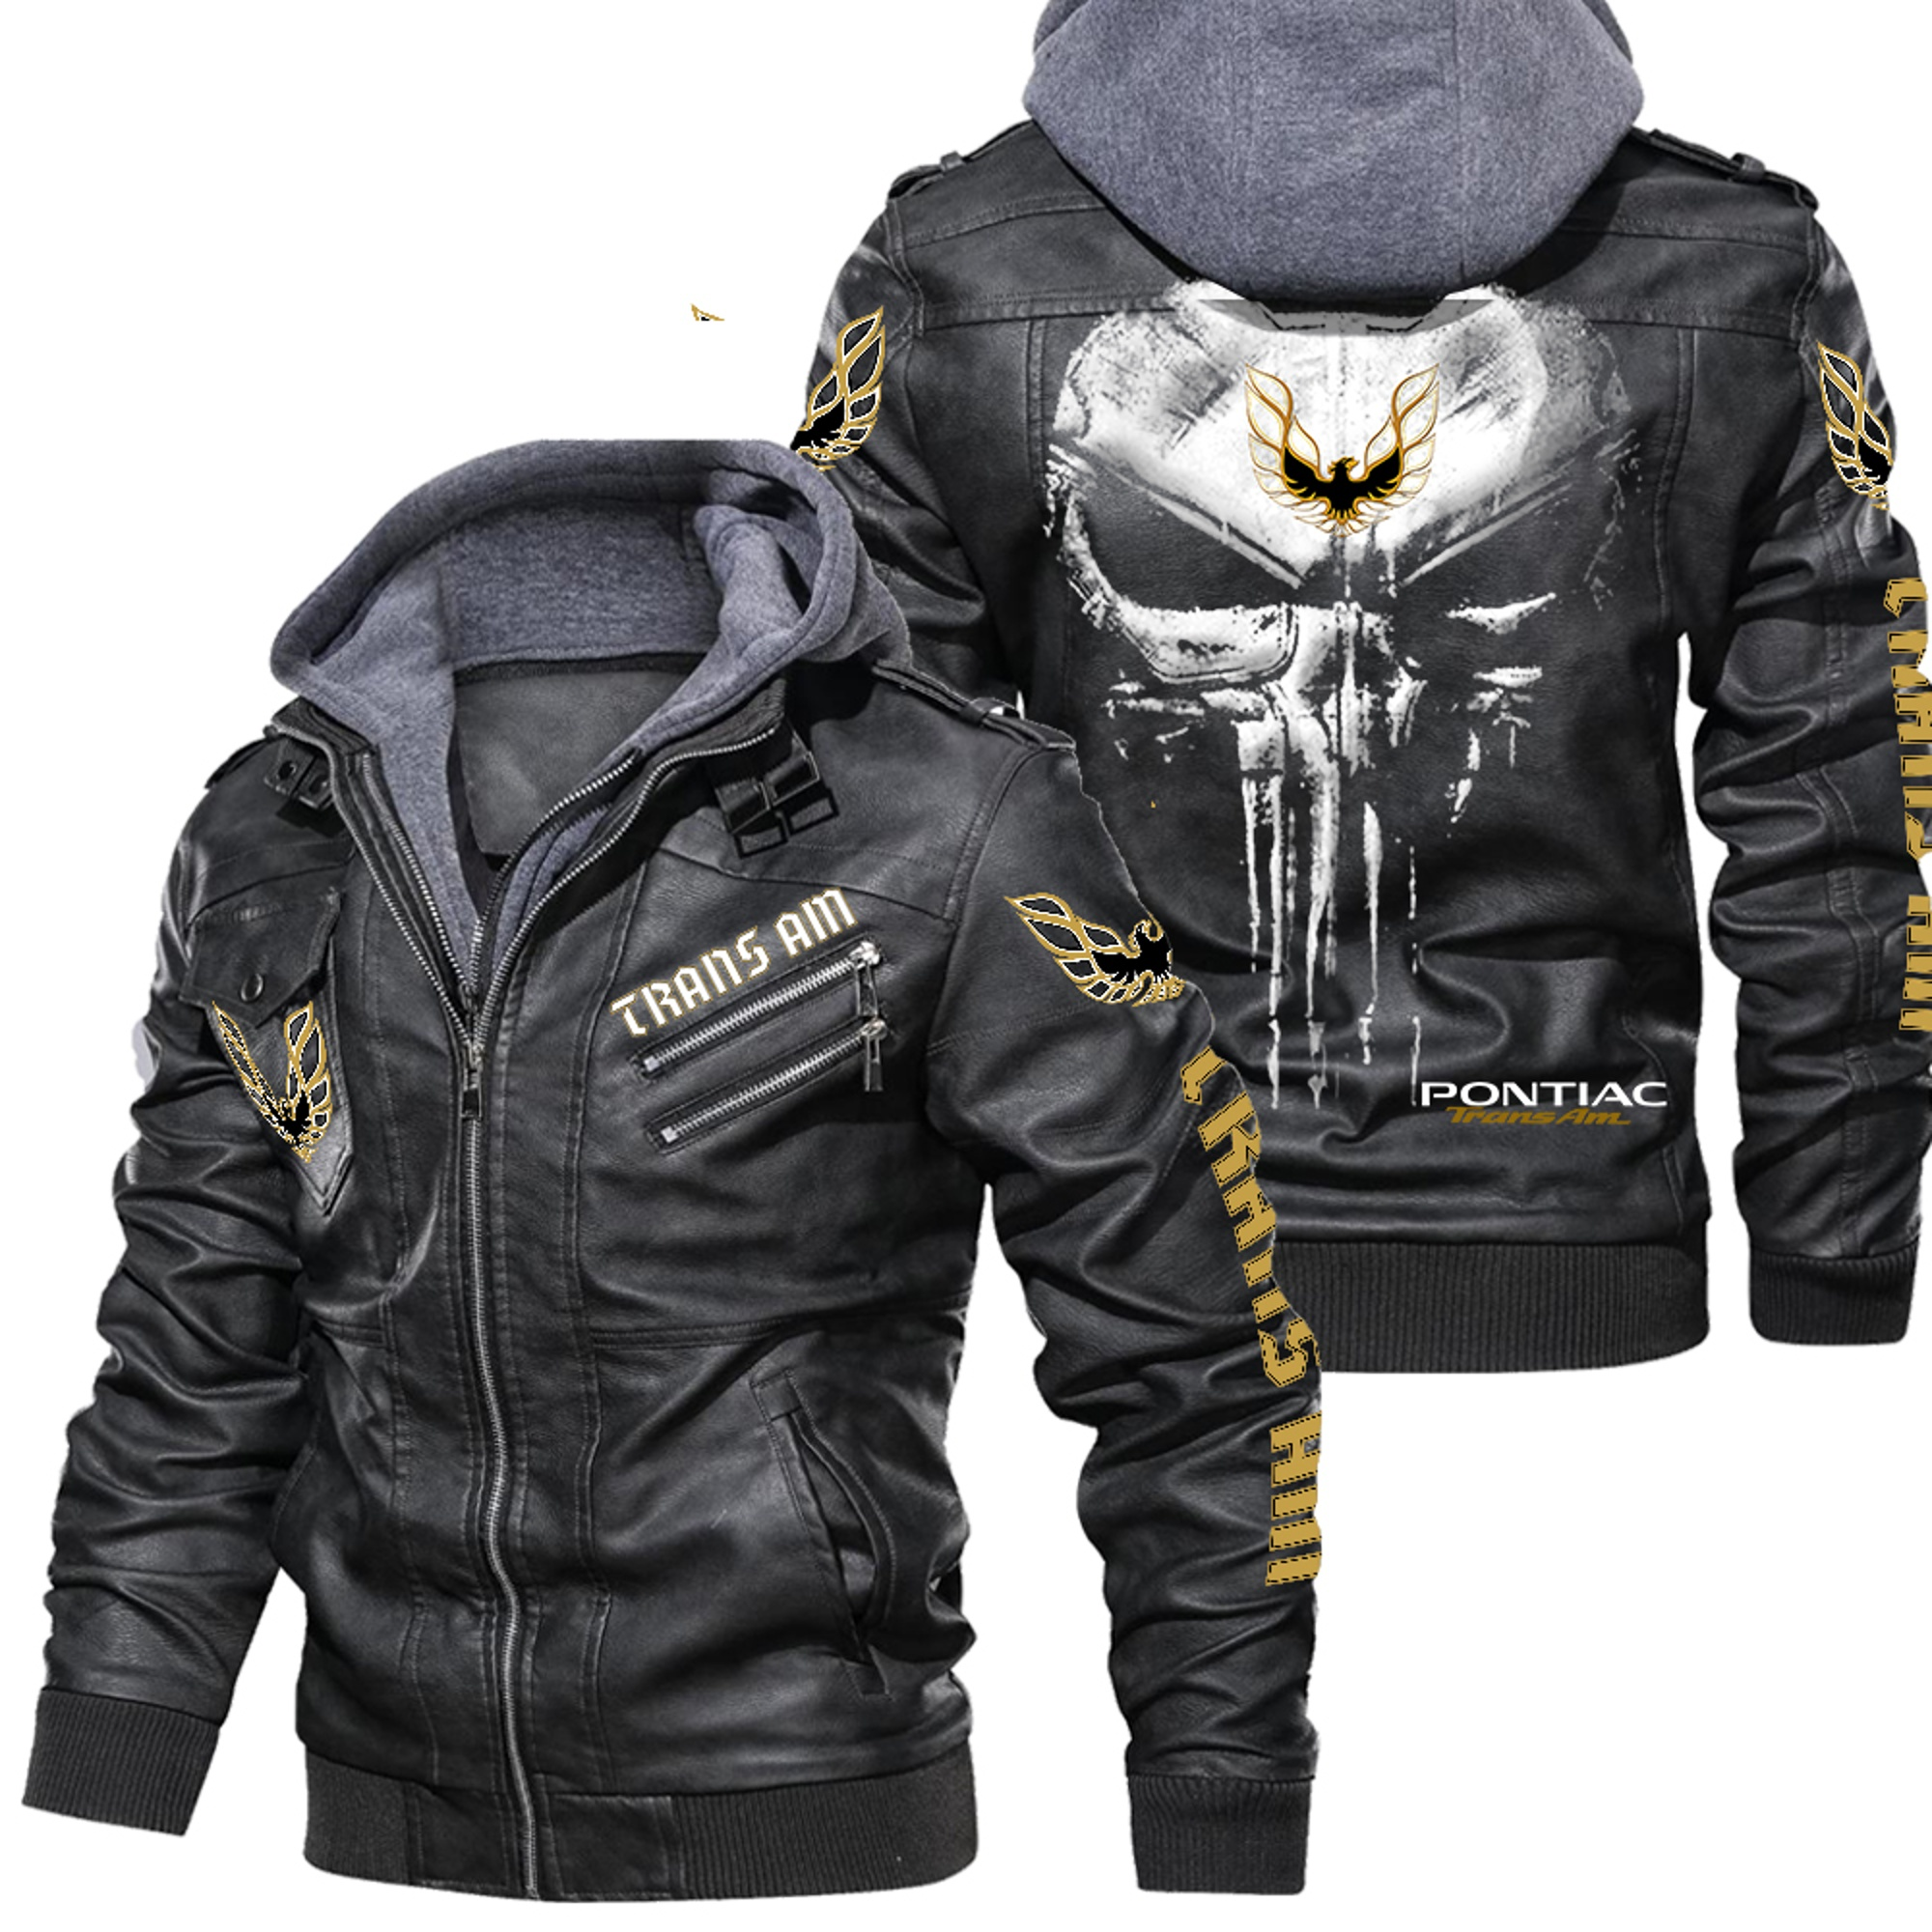 Mustang Black Leather Jacket,Warm Jacket, NFL Winter Outer Wear Gift